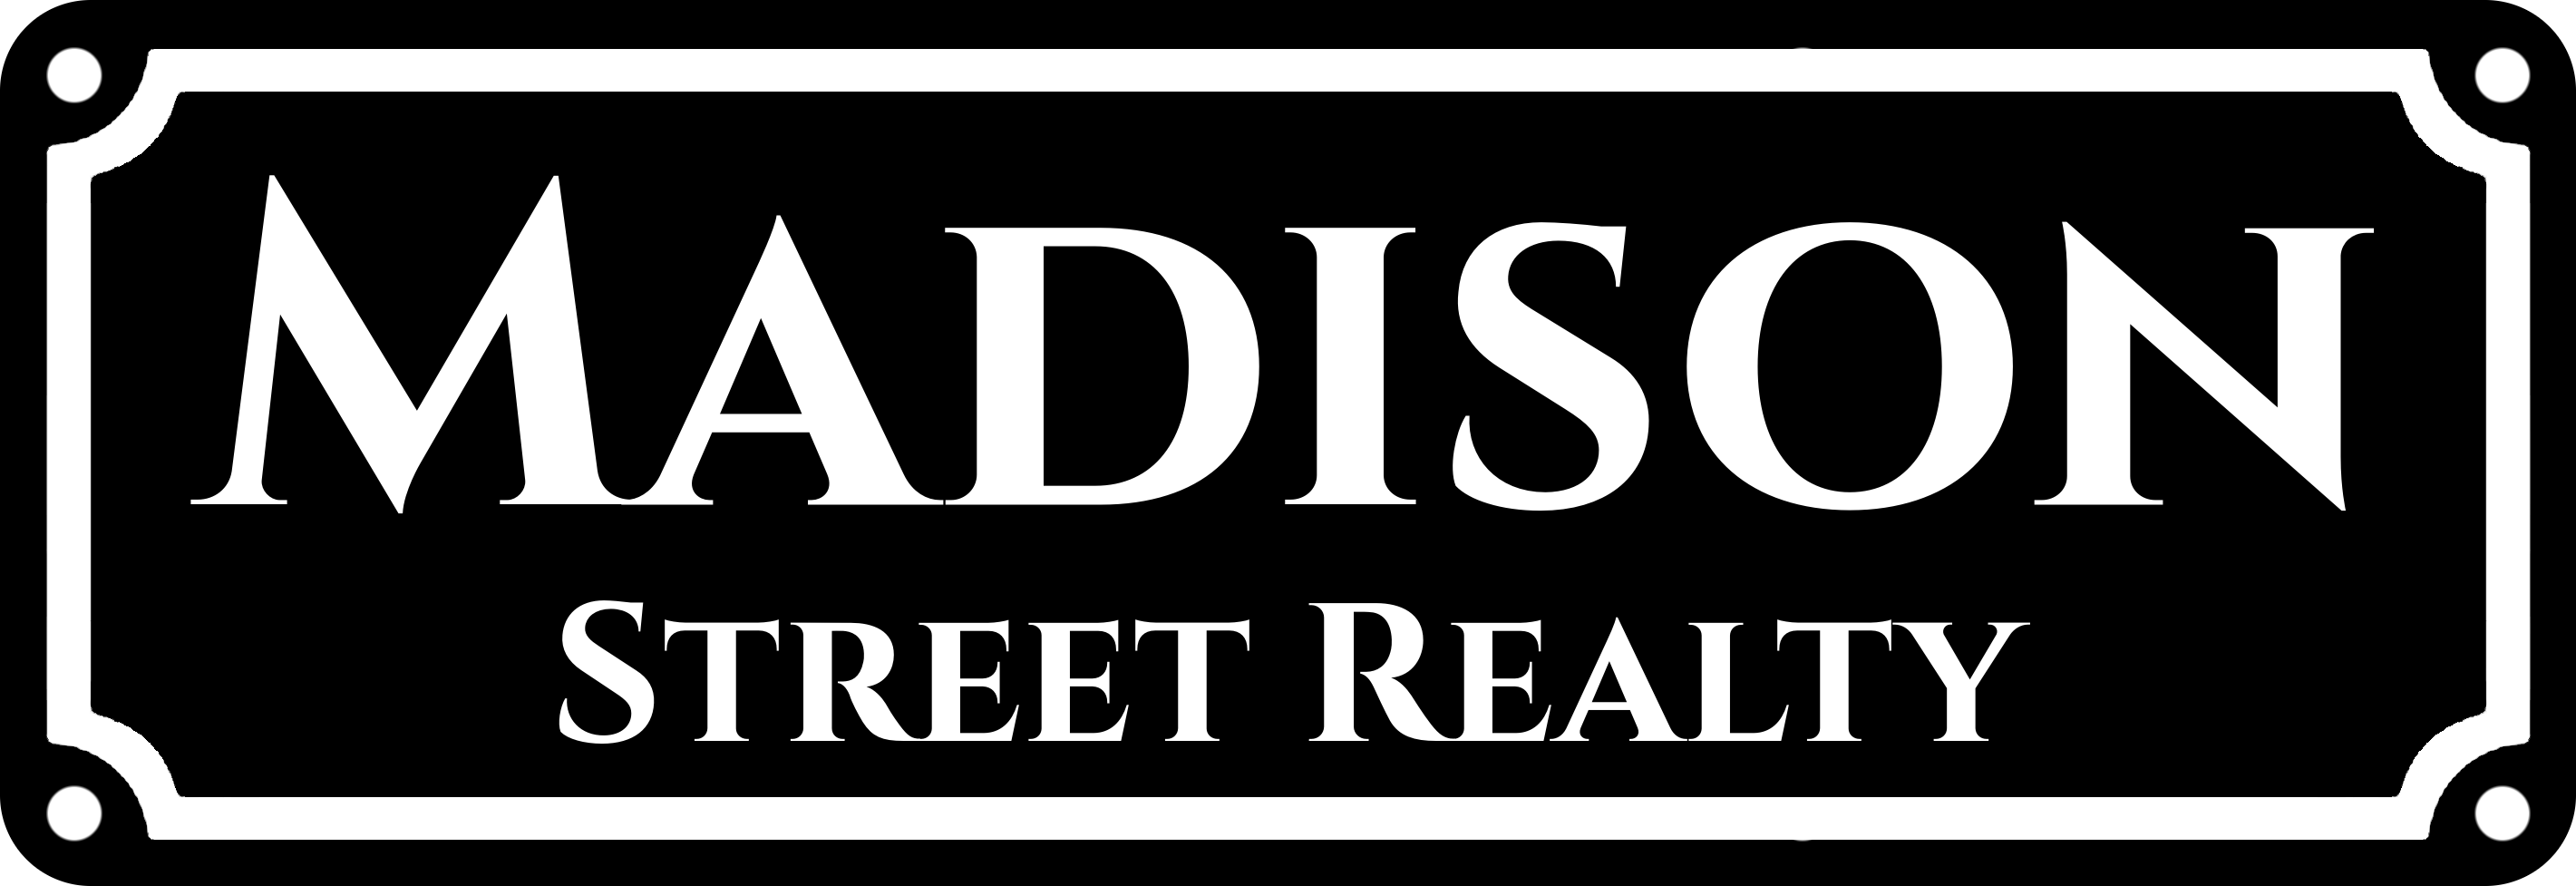 Madison Street Realty